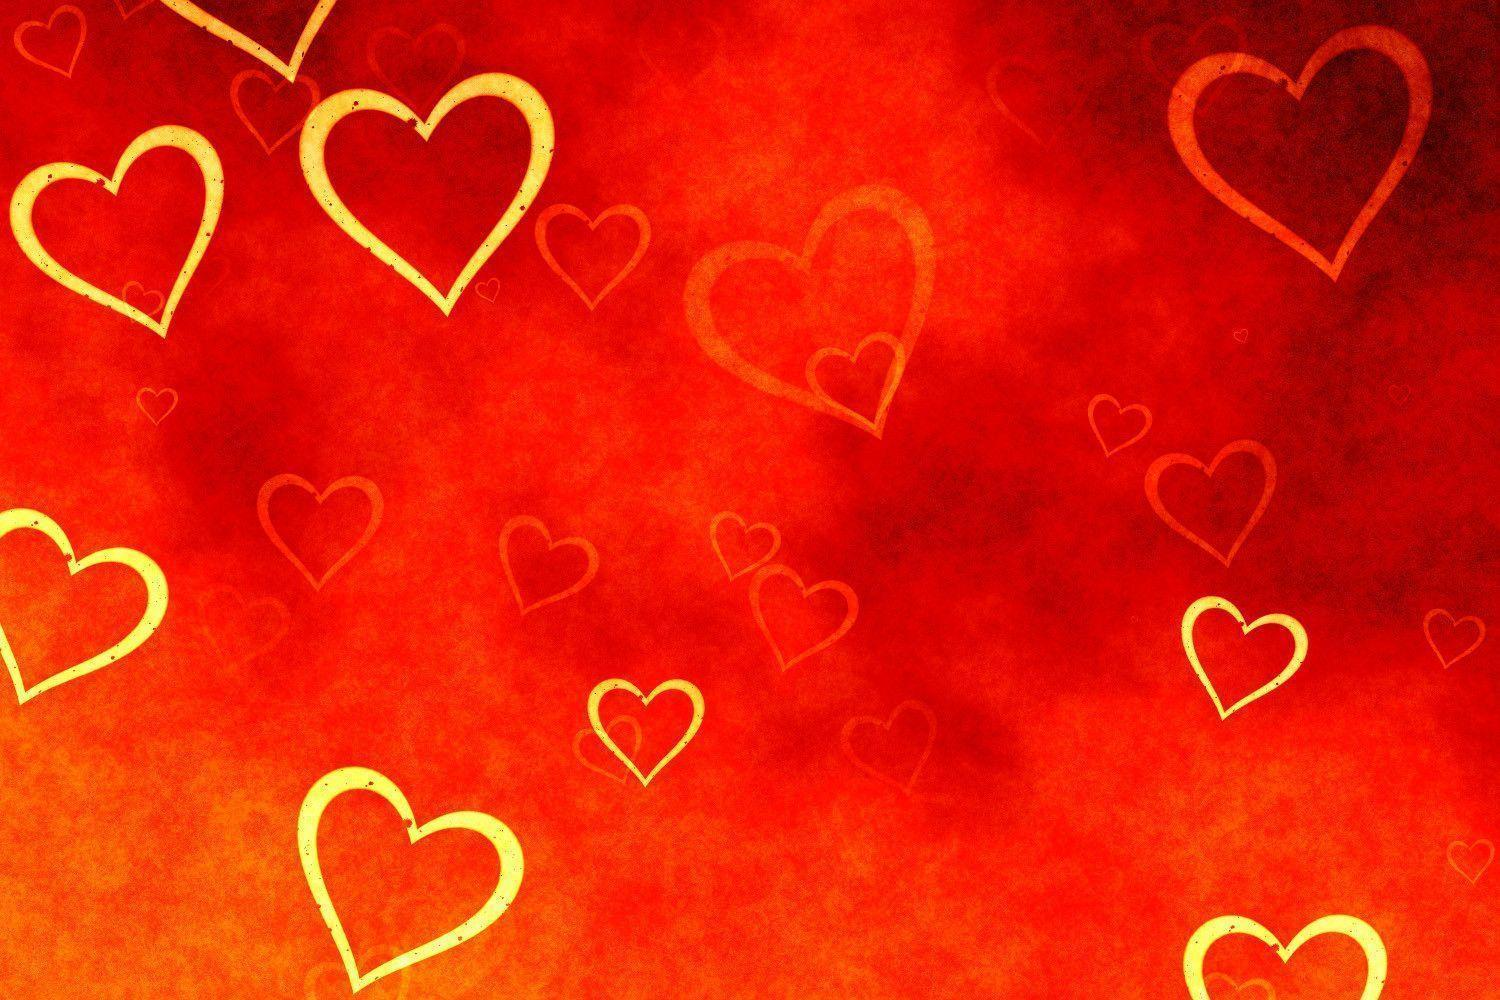 heart love red background - photo #37